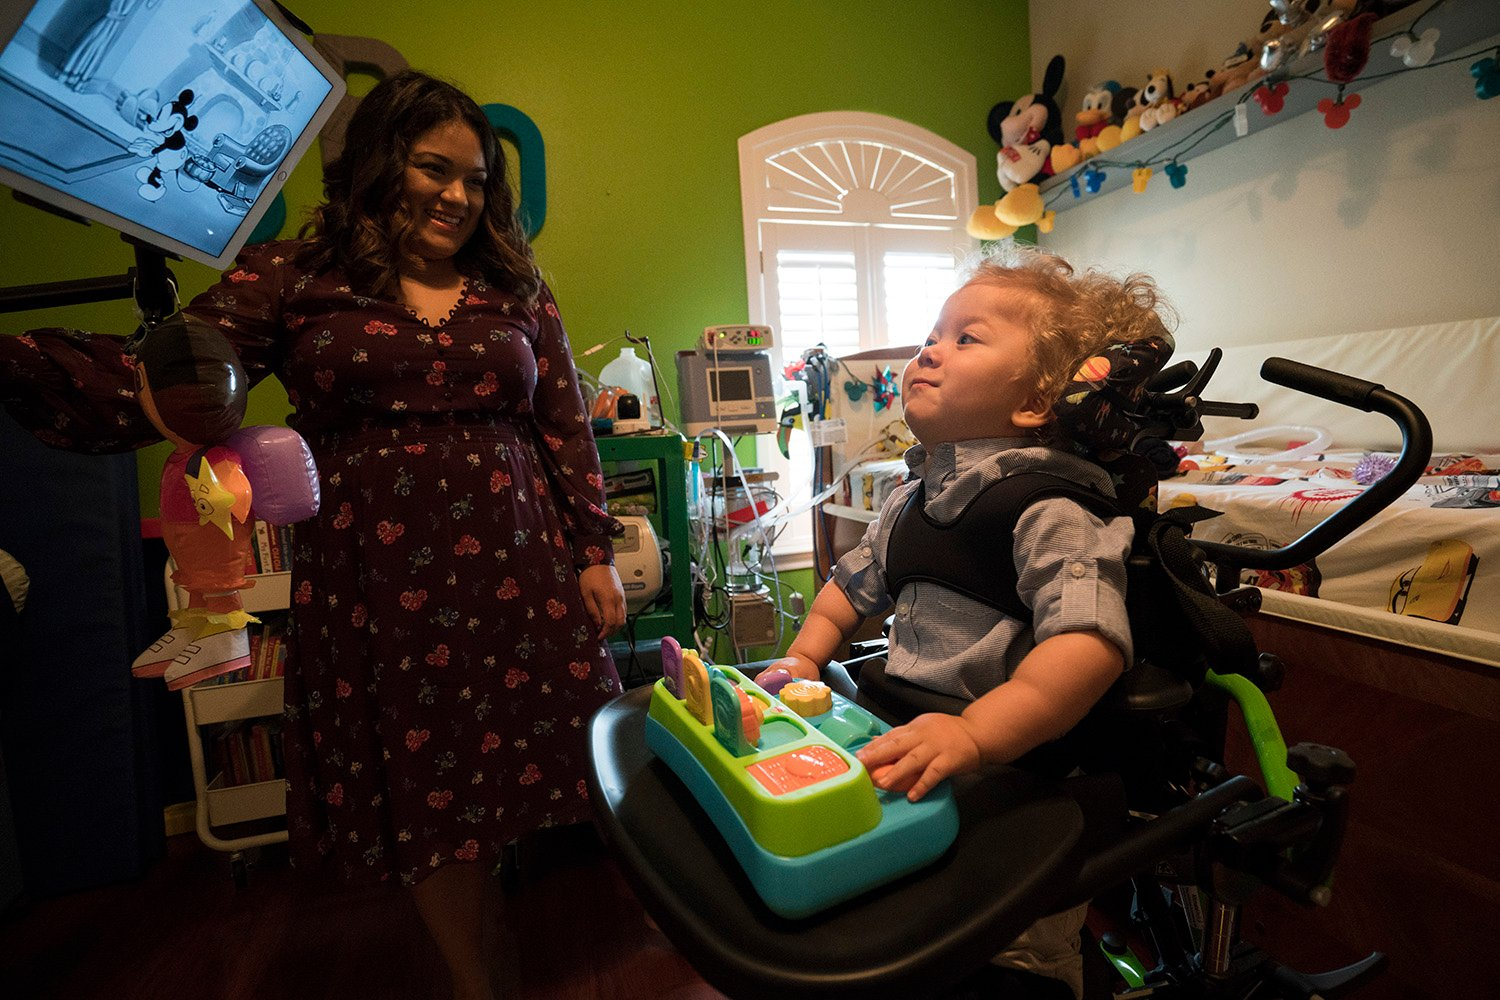 Jack Resendez watches cartoons from his pediatric standing frame. Though spinal muscular atrophy immobilizes children, it does not affect their ability to learn.